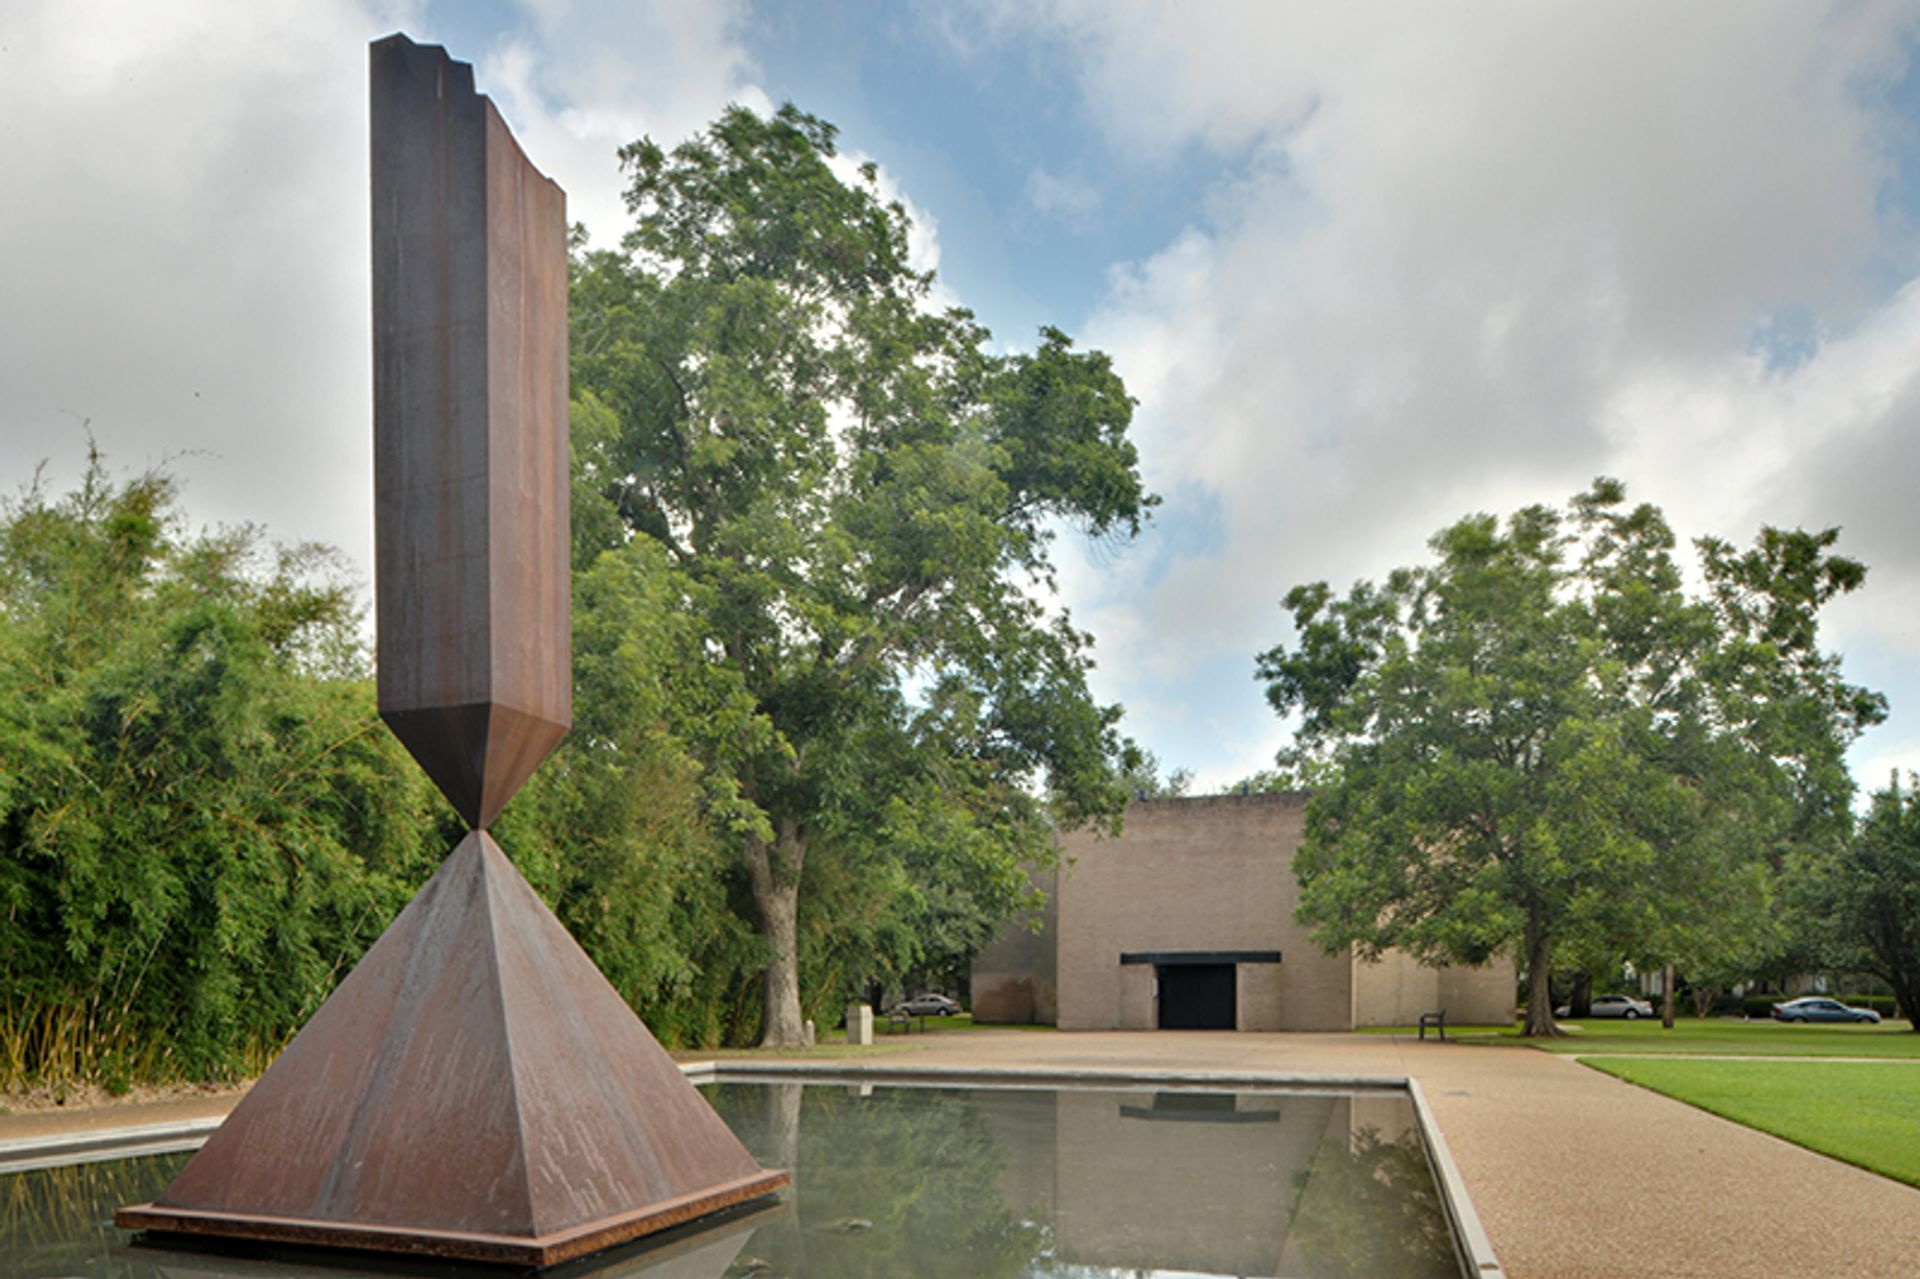 Broken Obelisk (1969) by Barnett Newman in the reflecting pool on the grounds of Rothko Chapel in Houston, Texas Wikimedia Commons